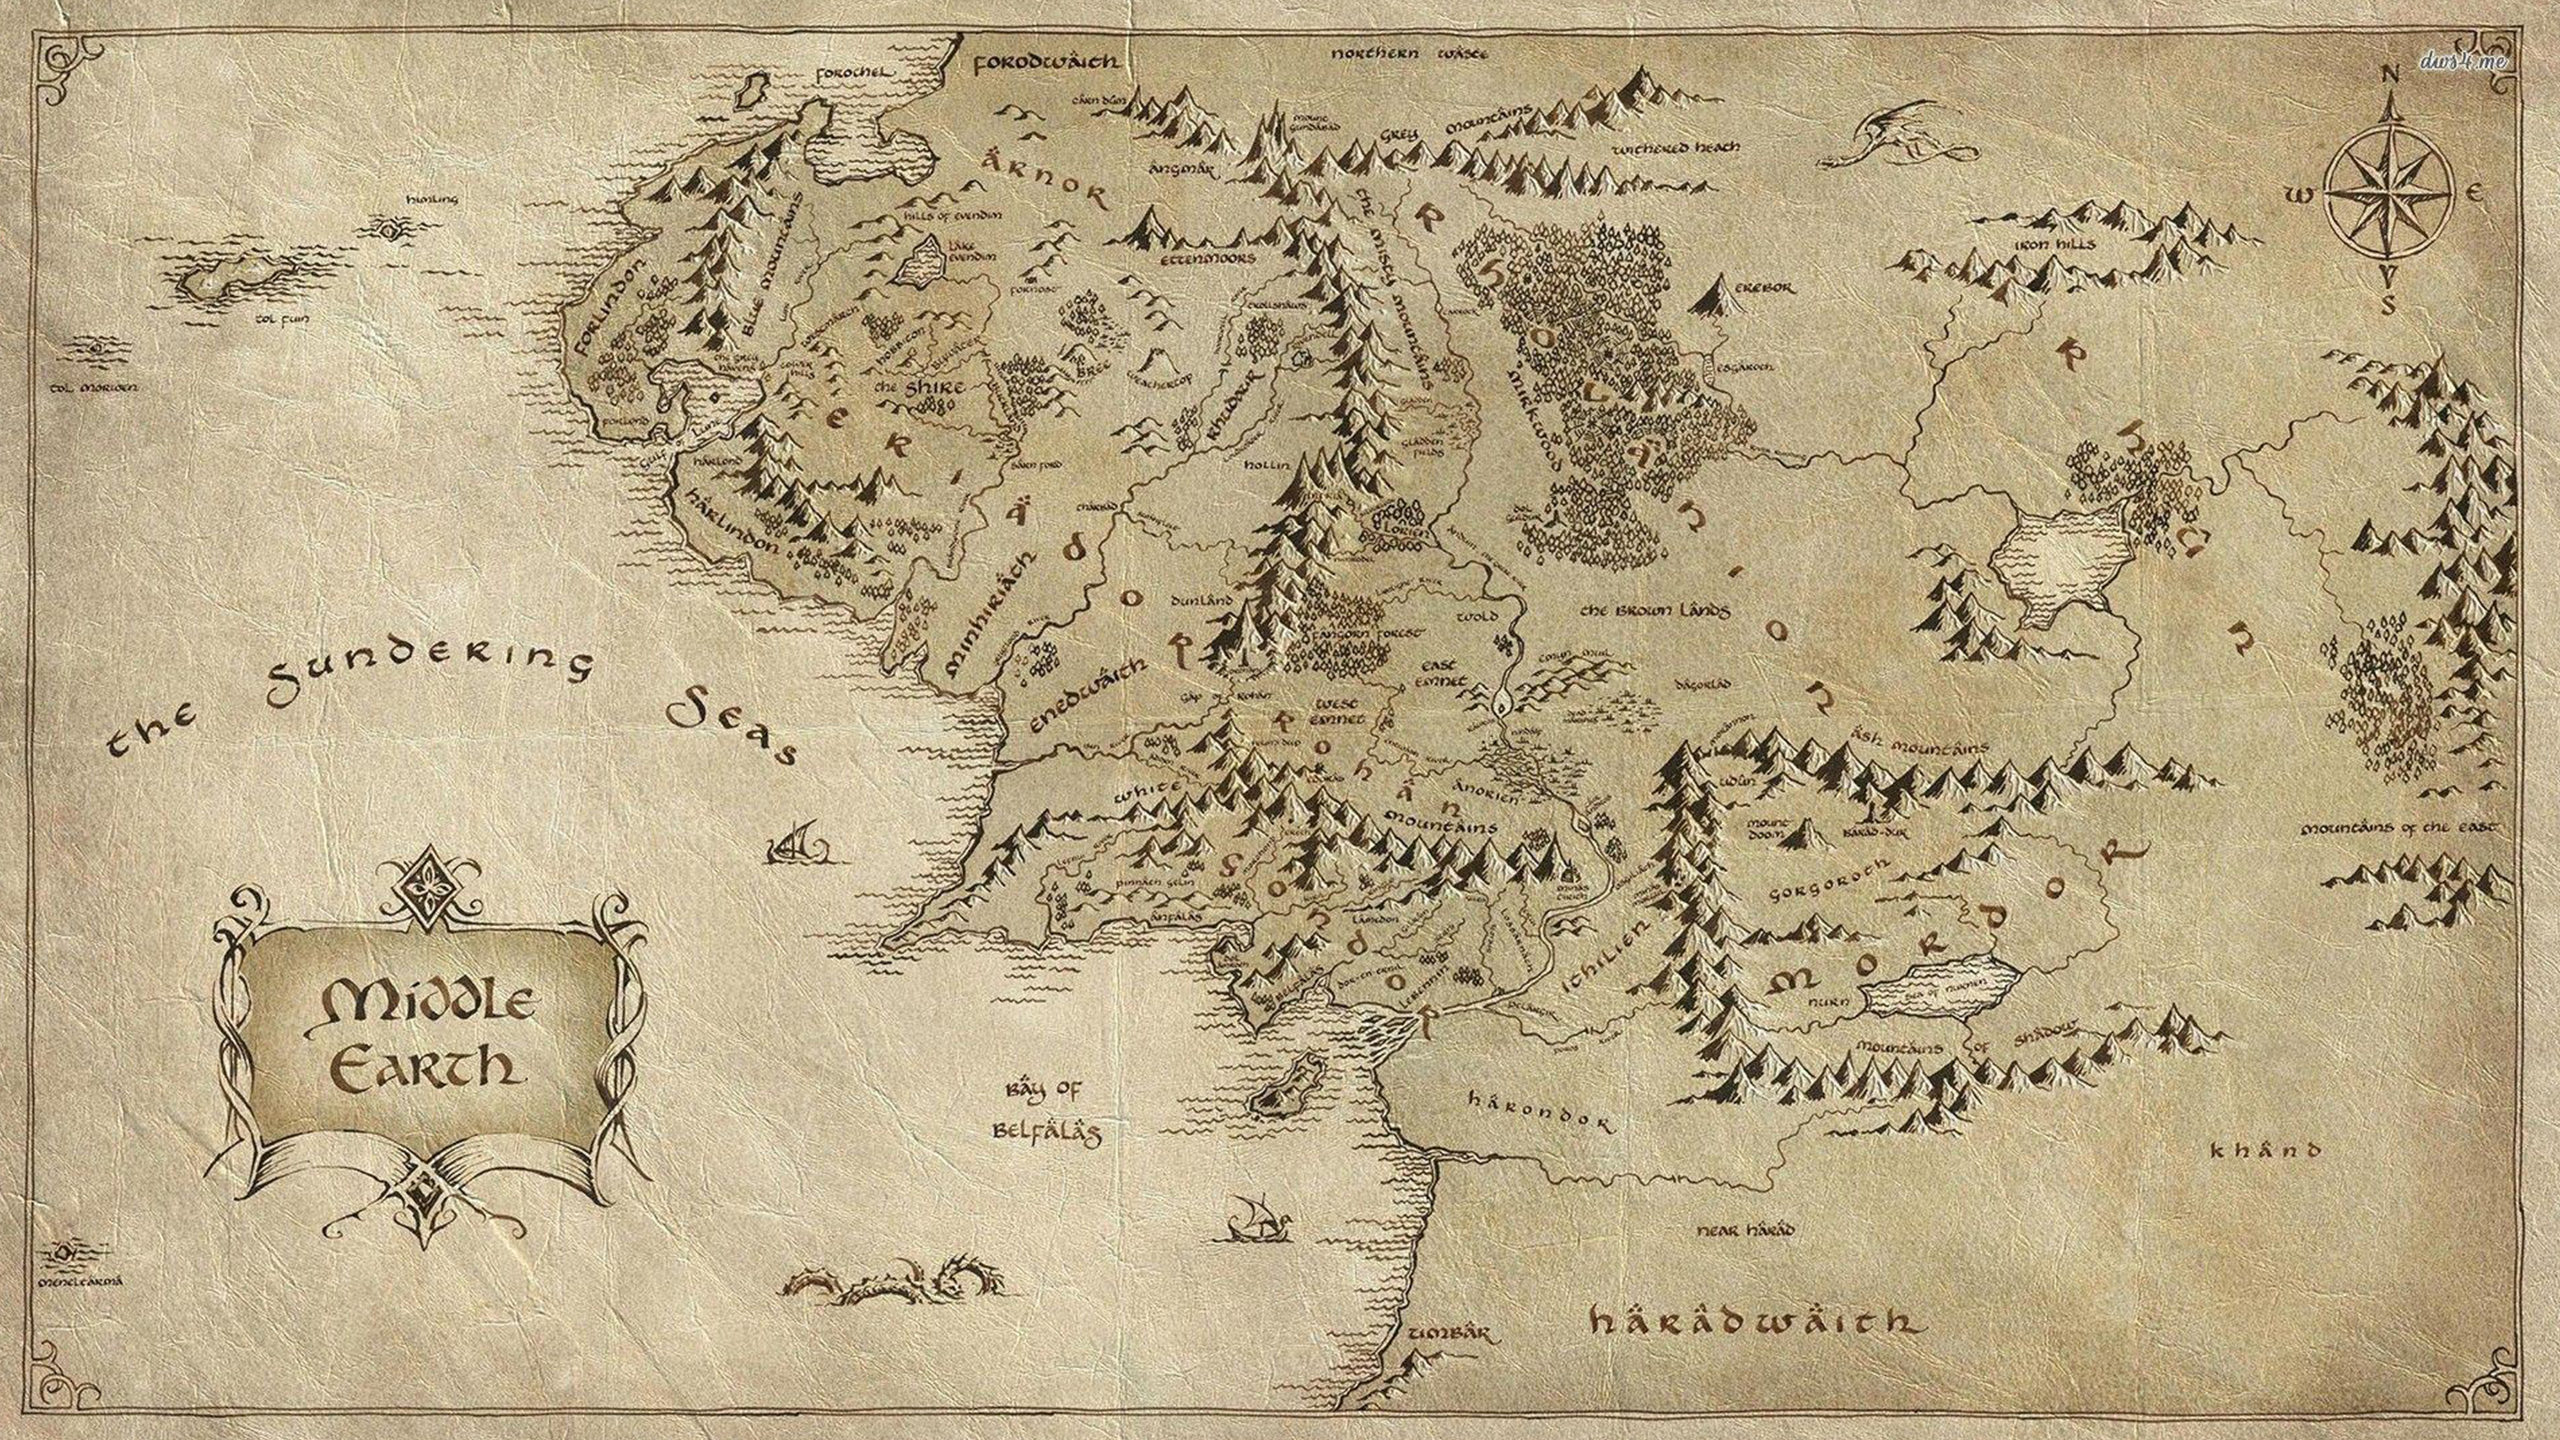 Lord Of The Rings Middle Earth Map Wqhd 1440p Wallpaper Pixelz